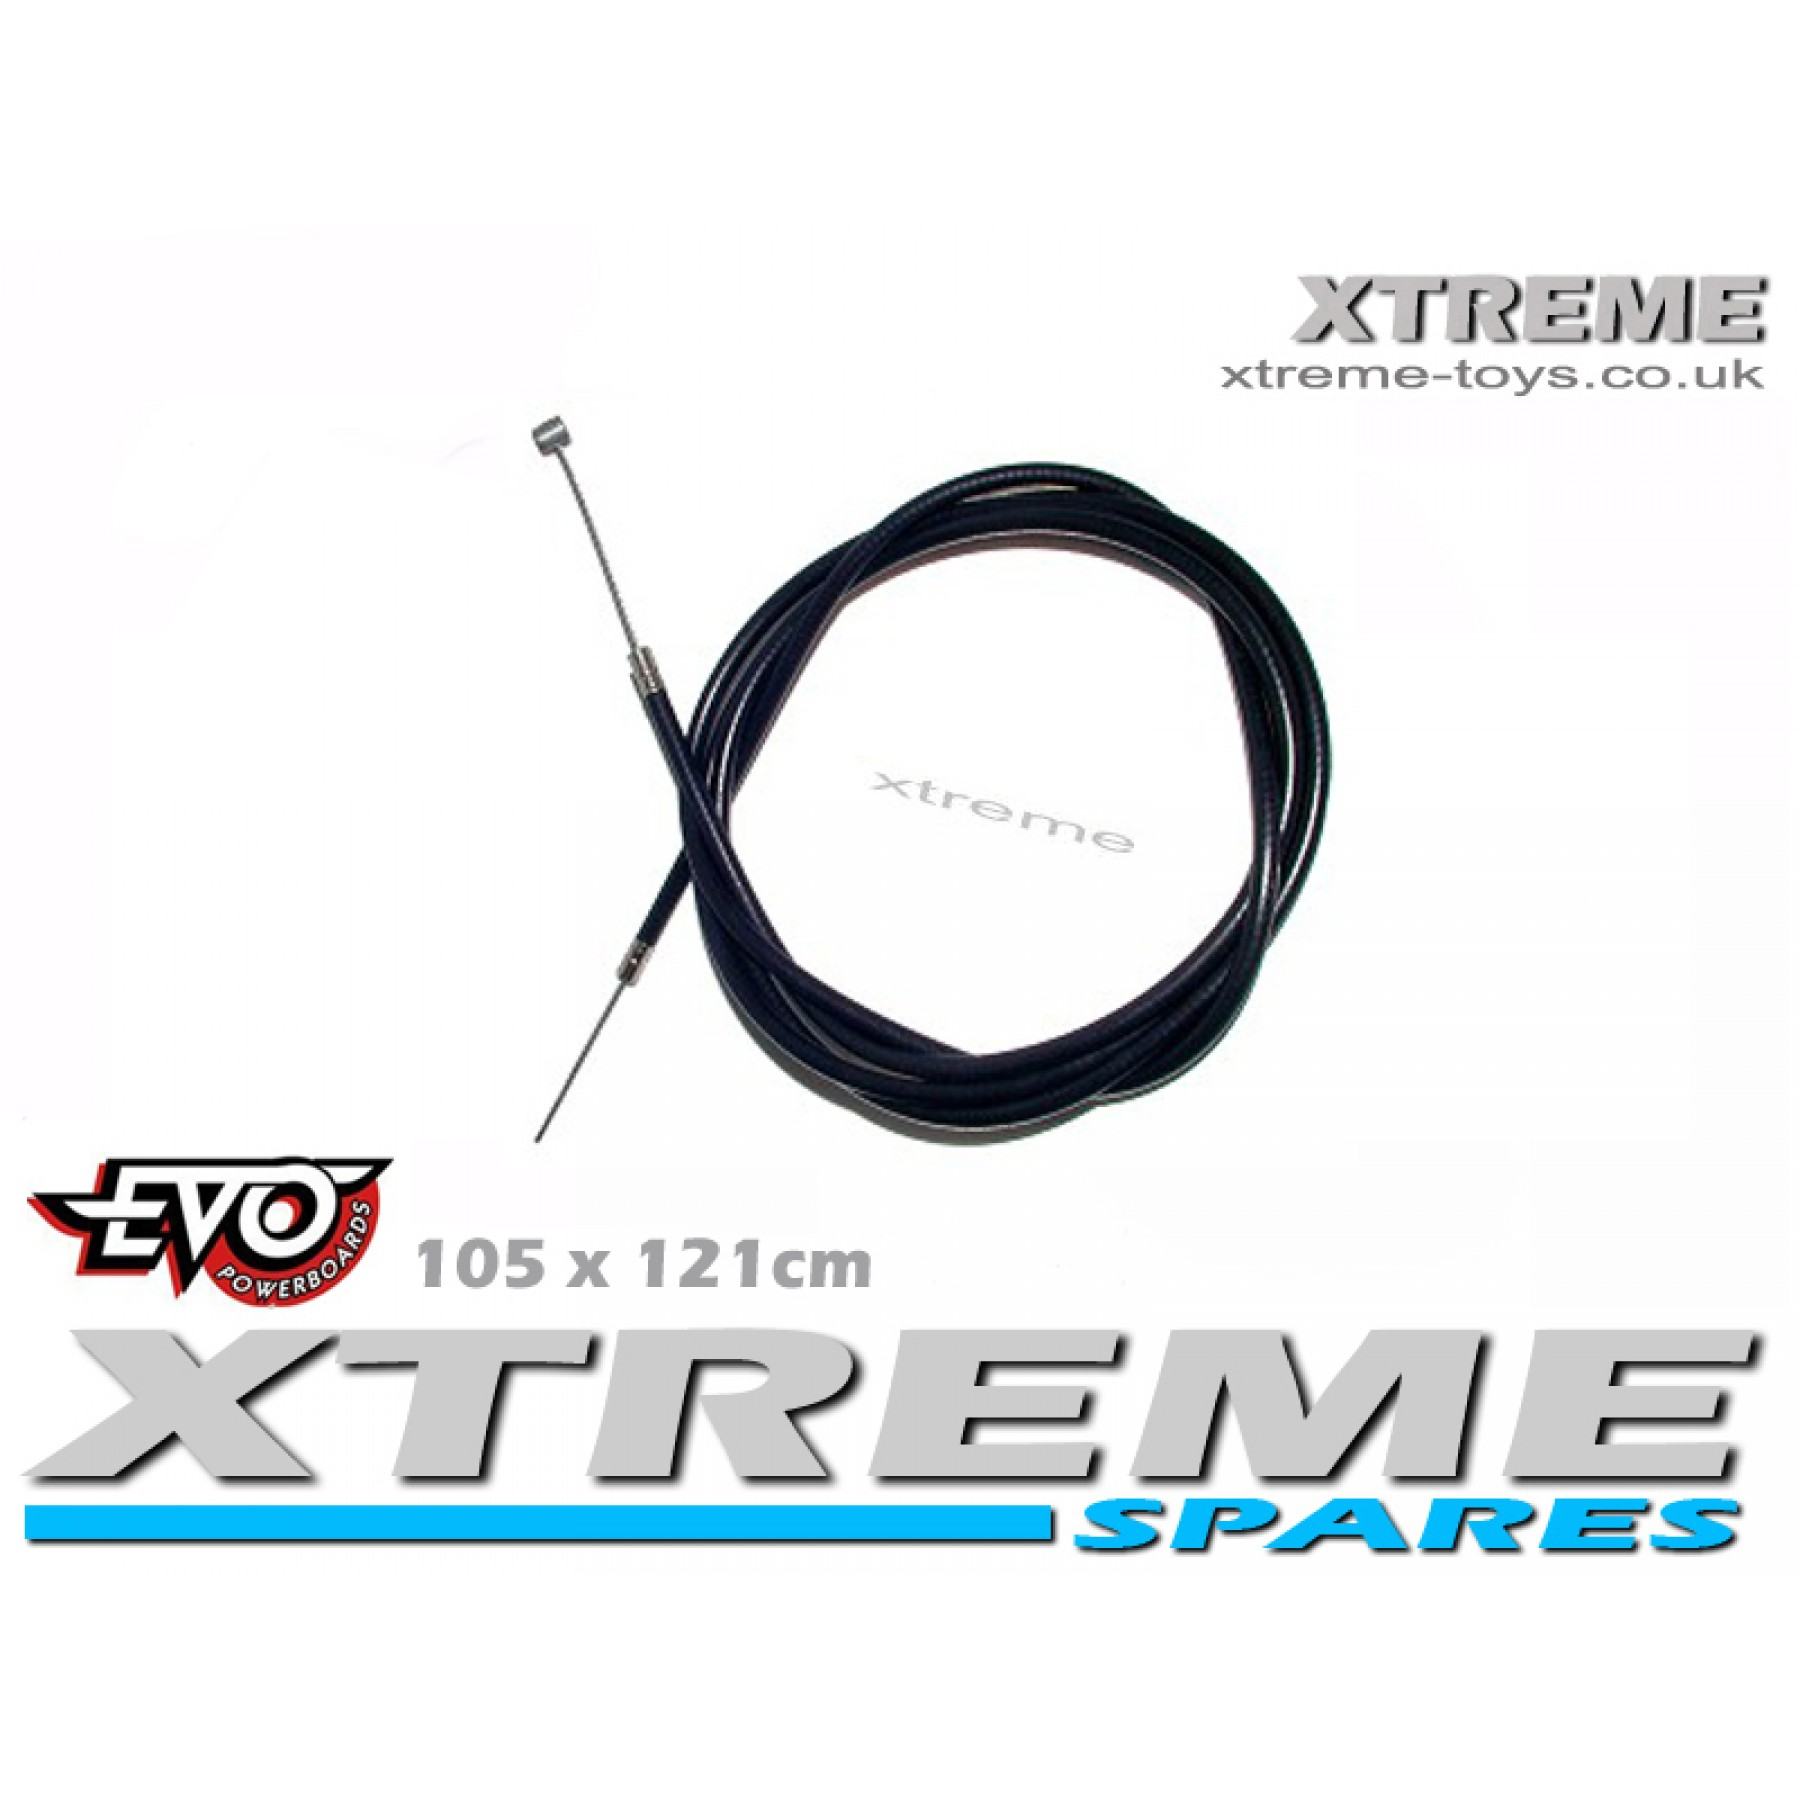 EVO PETROL SCOOTER 105x121 FRONT/ REAR BRAKE CABLE / GO PED / MOTORBOARD